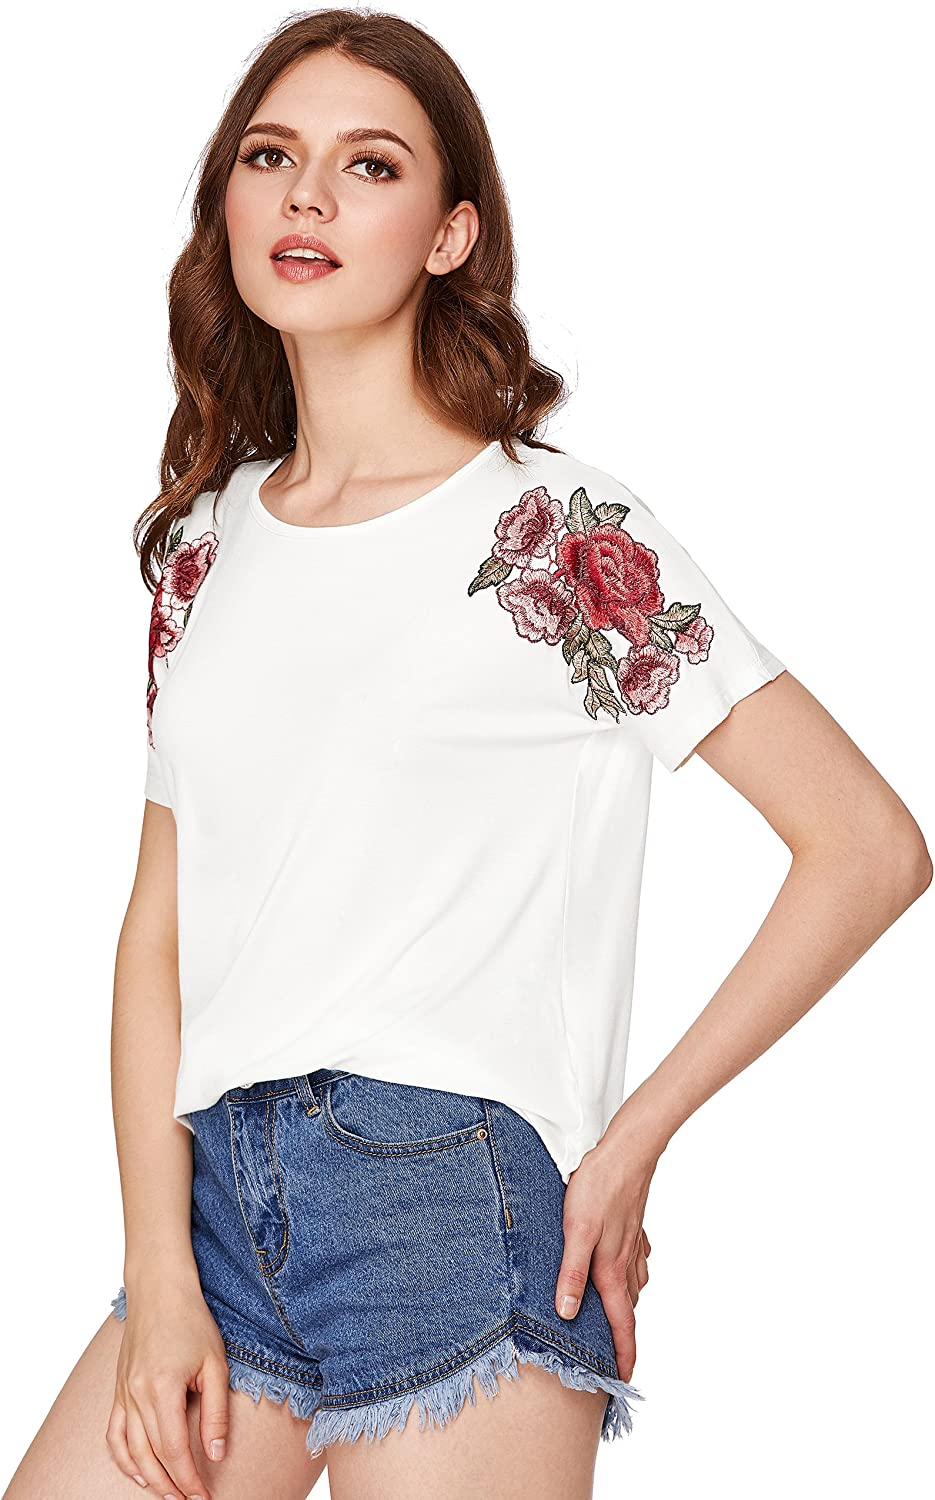 Milumia Women's Embroidered Flower Patch Short Sleeve Tees TShirt Tops